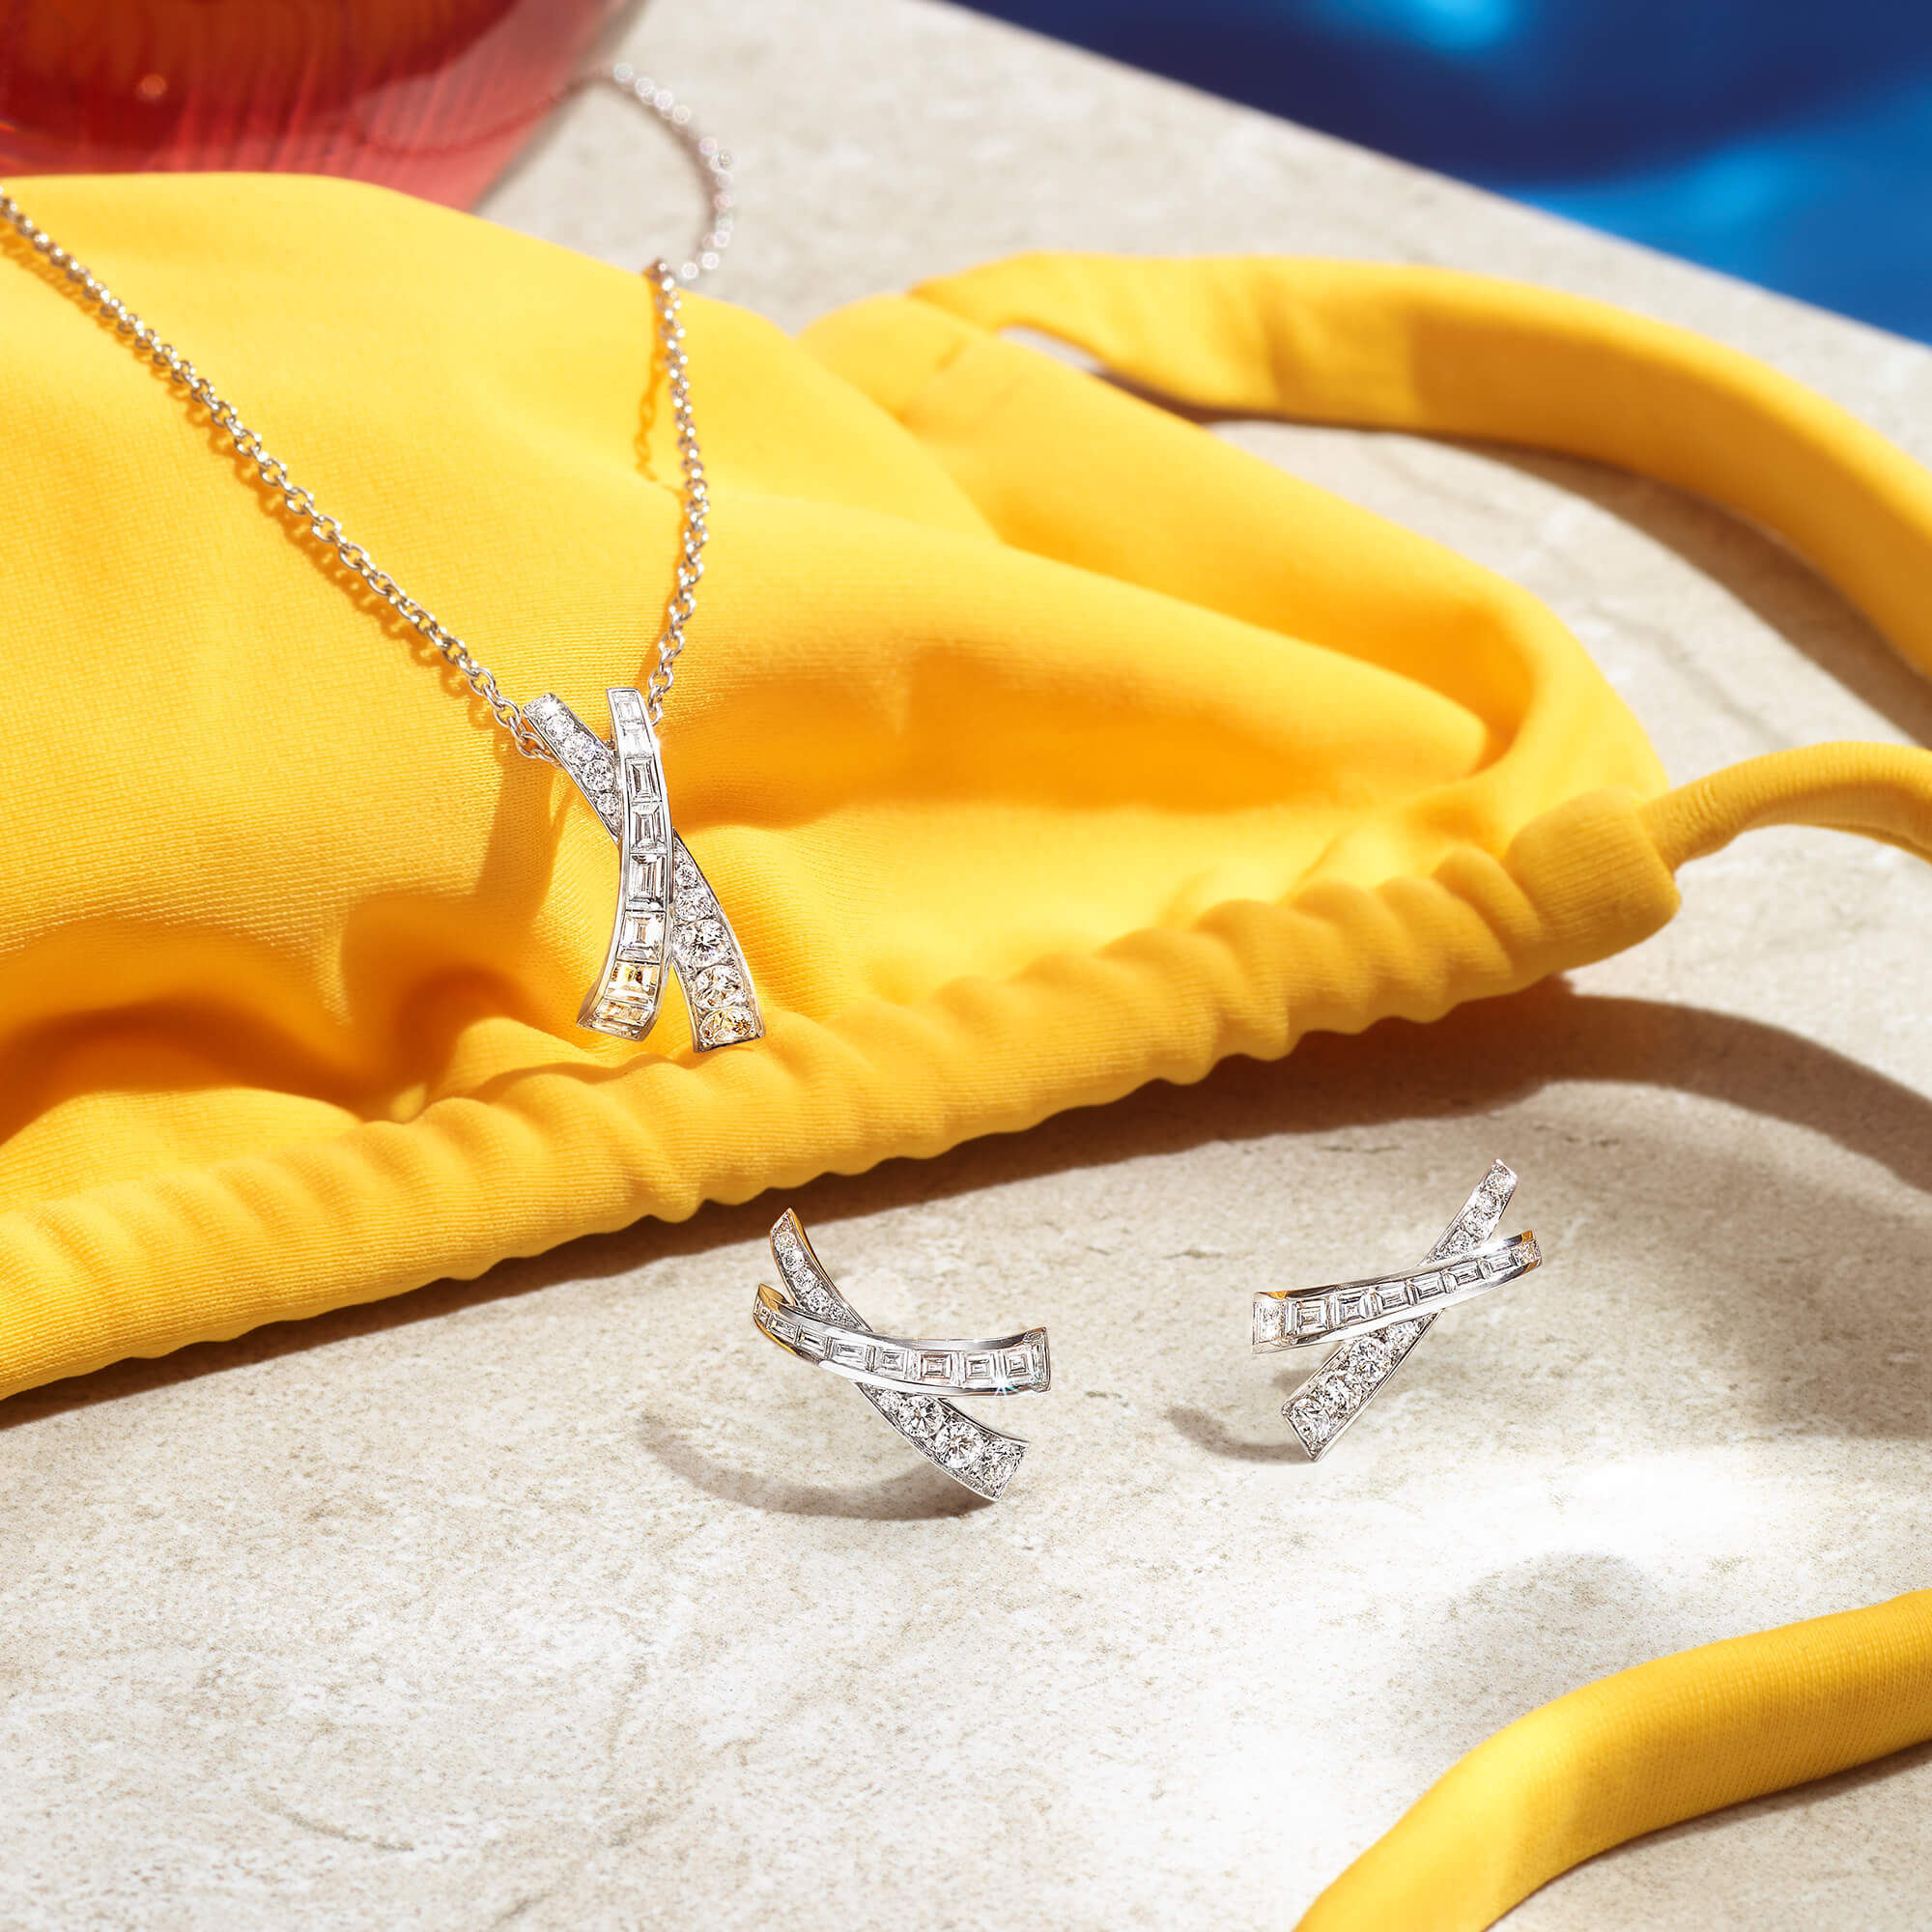 Close up of the Graff Kiss collection diamond and pendant at a pool side